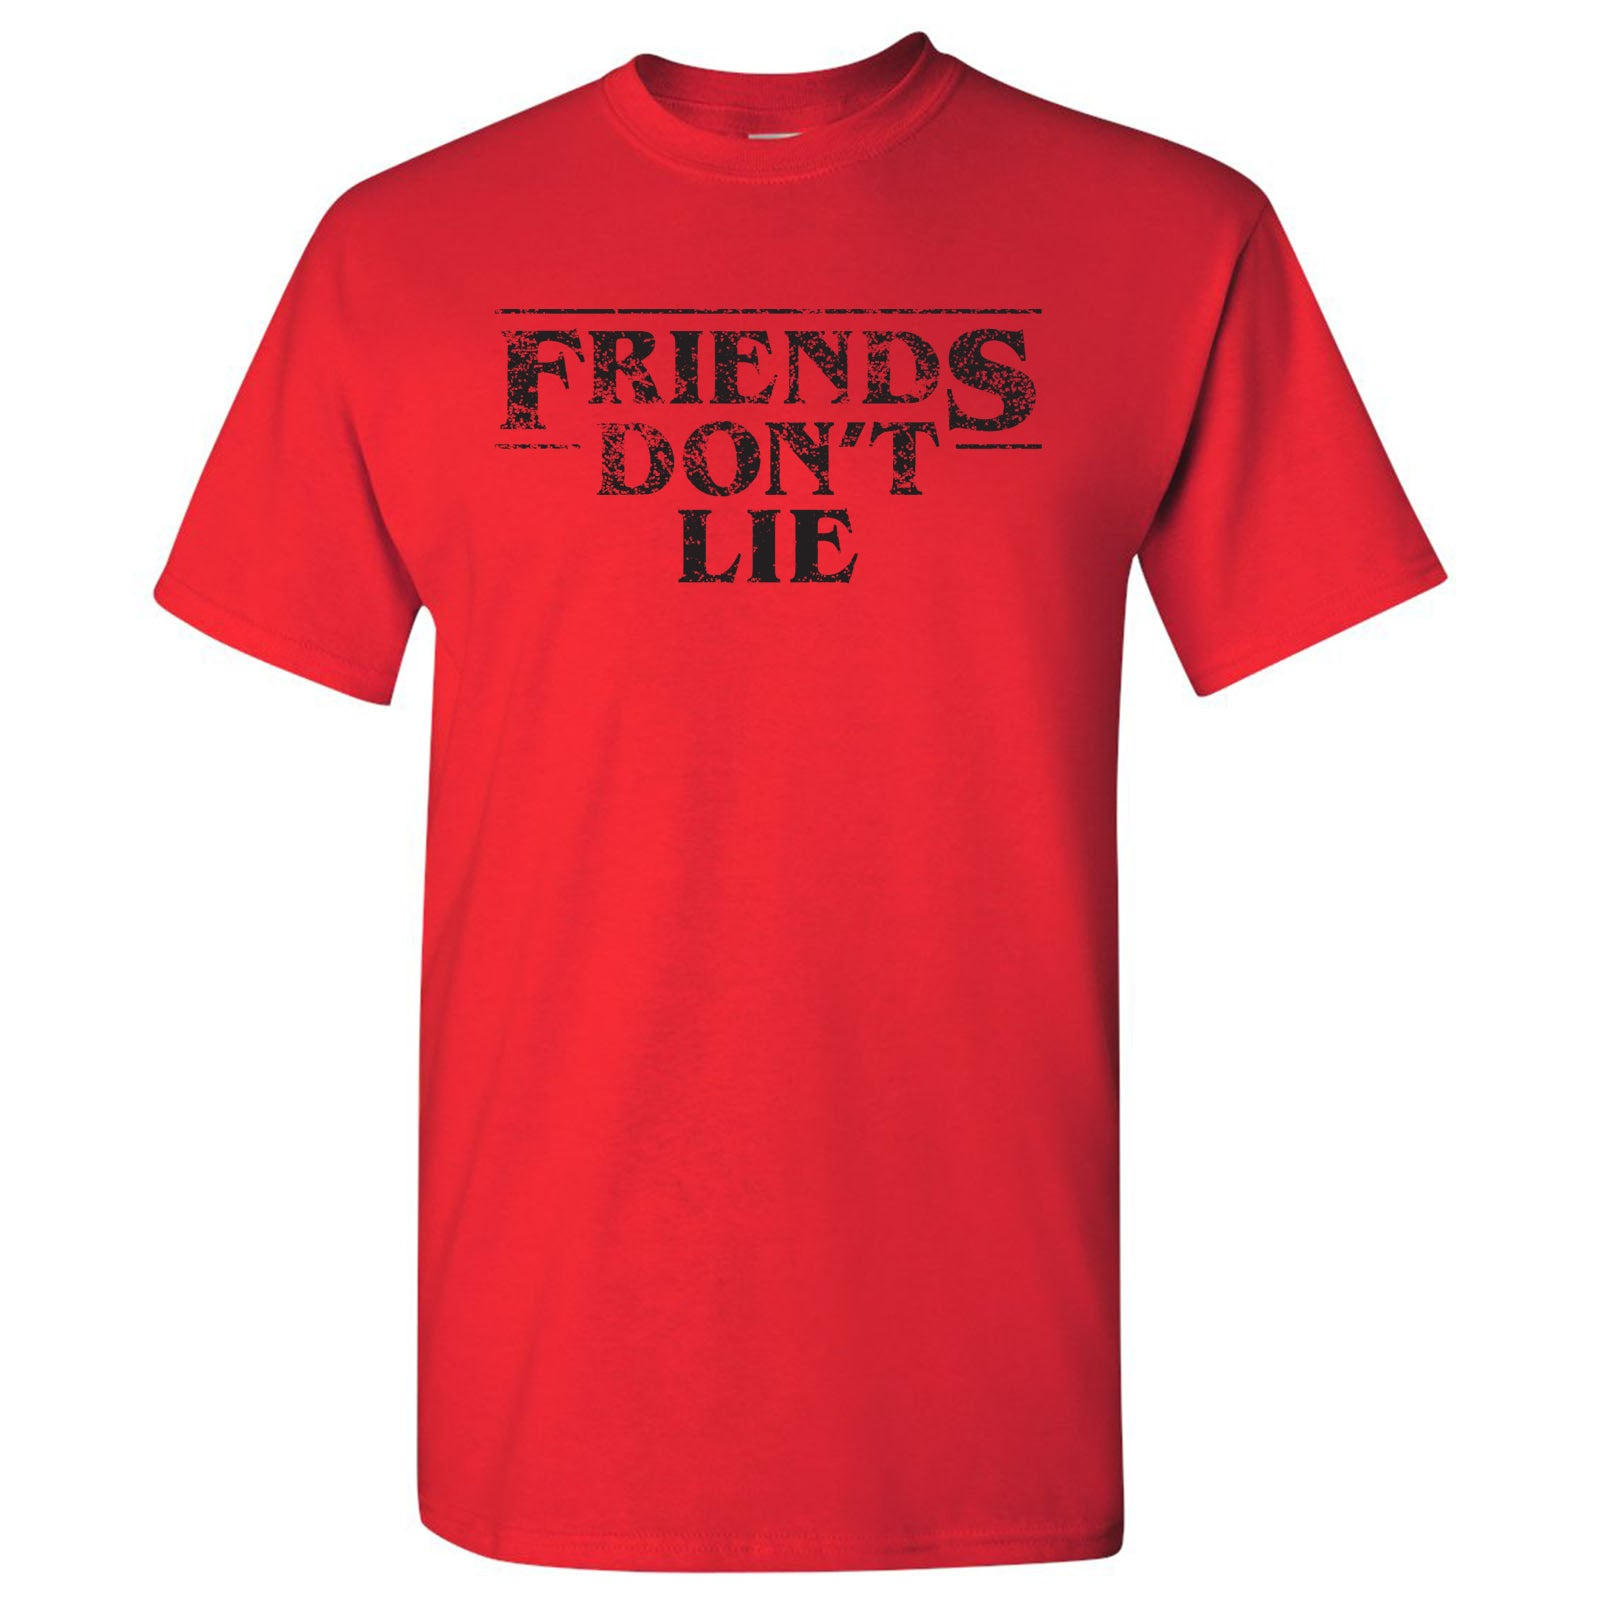 996b70dc Friends Don't Lie - Stranger of Things - T-Shirt - Red - UGP